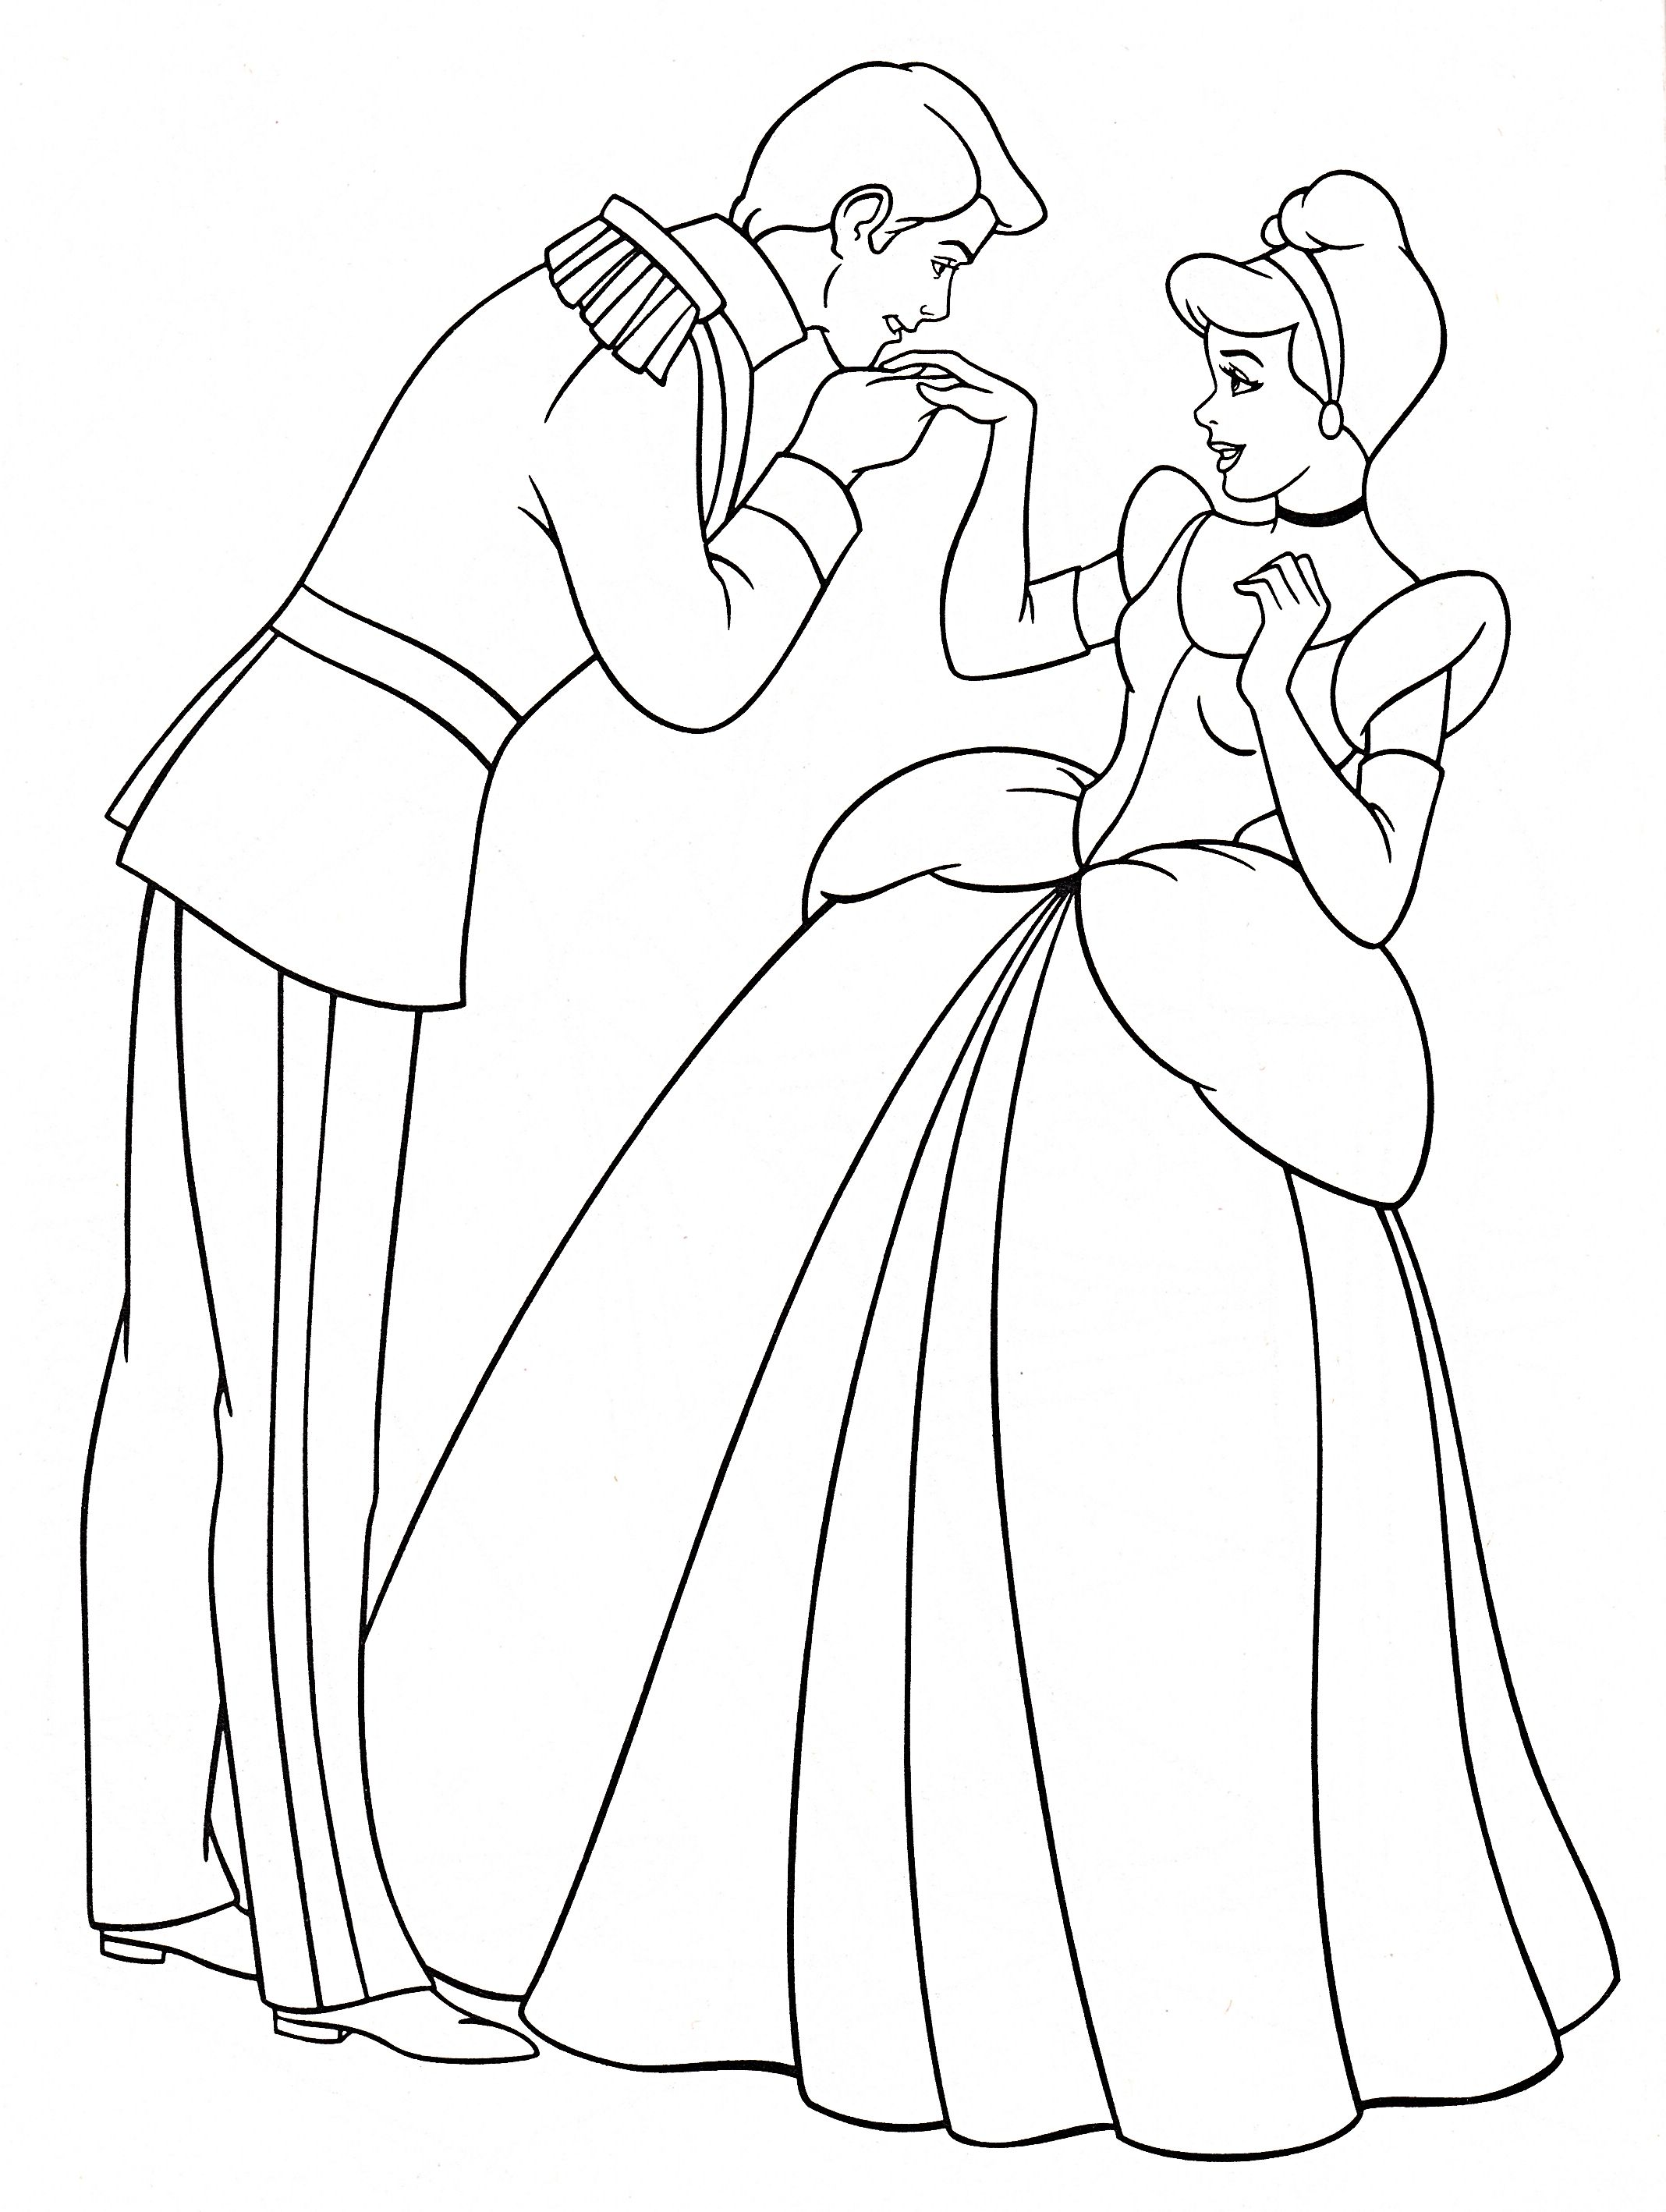 Disney universe coloring pages - Walt Disney Coloring Pages Prince Charming Princess Cinderella